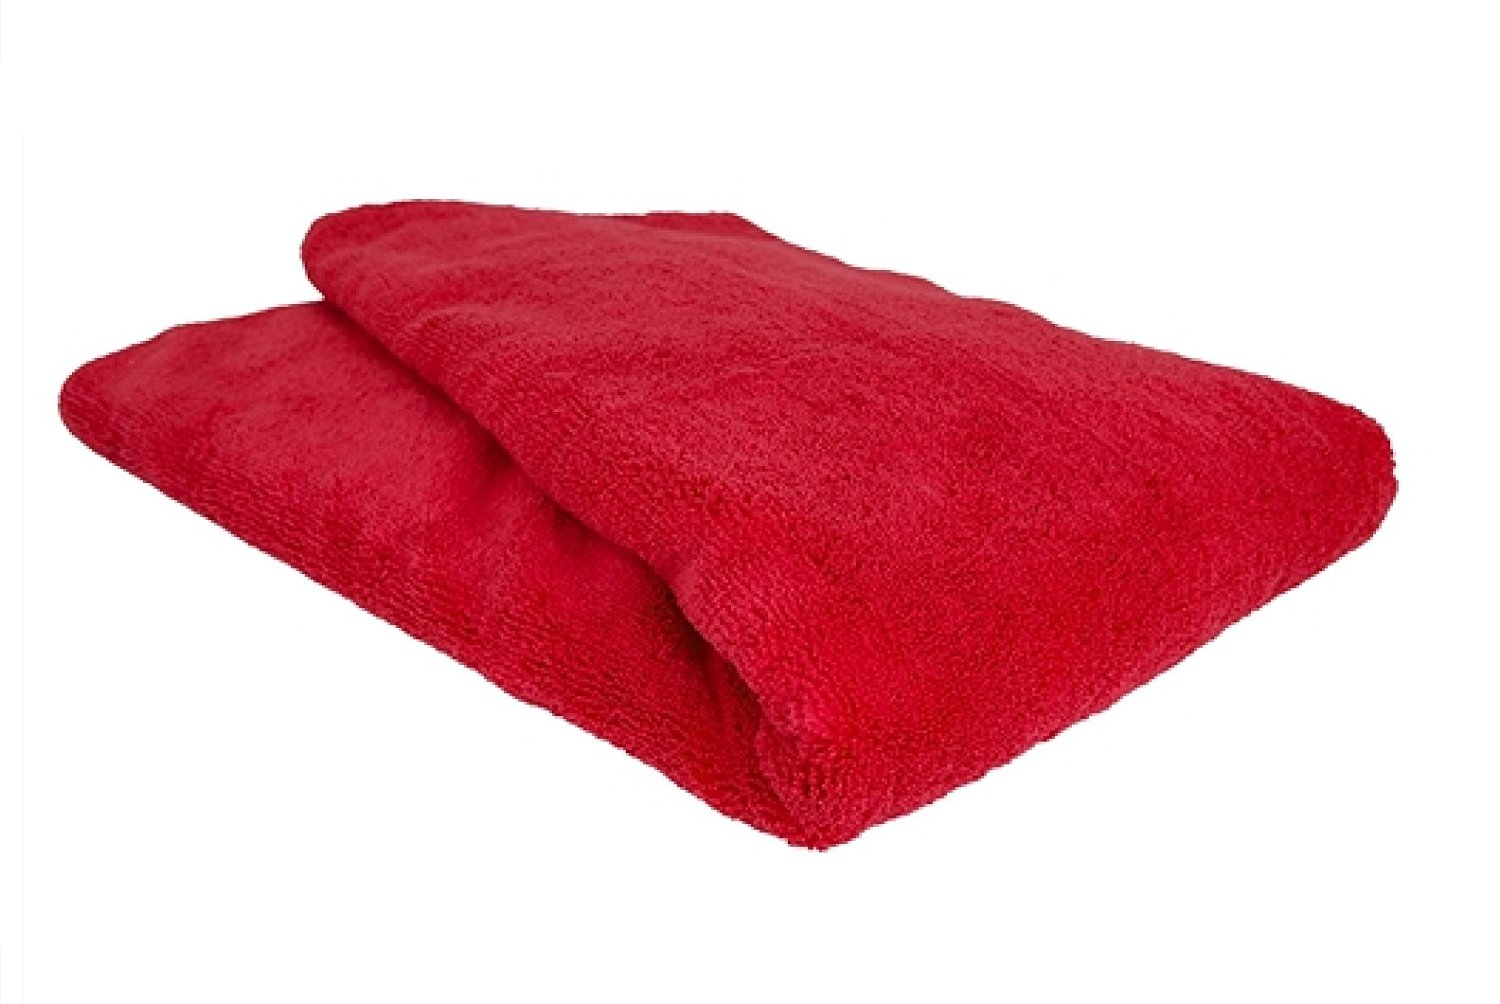 Big Deal! Cotton Terry Towel,RED Color,Low Cost Bulk Towels at Wholesale Prices! (50 Count Pack) (50, RED)